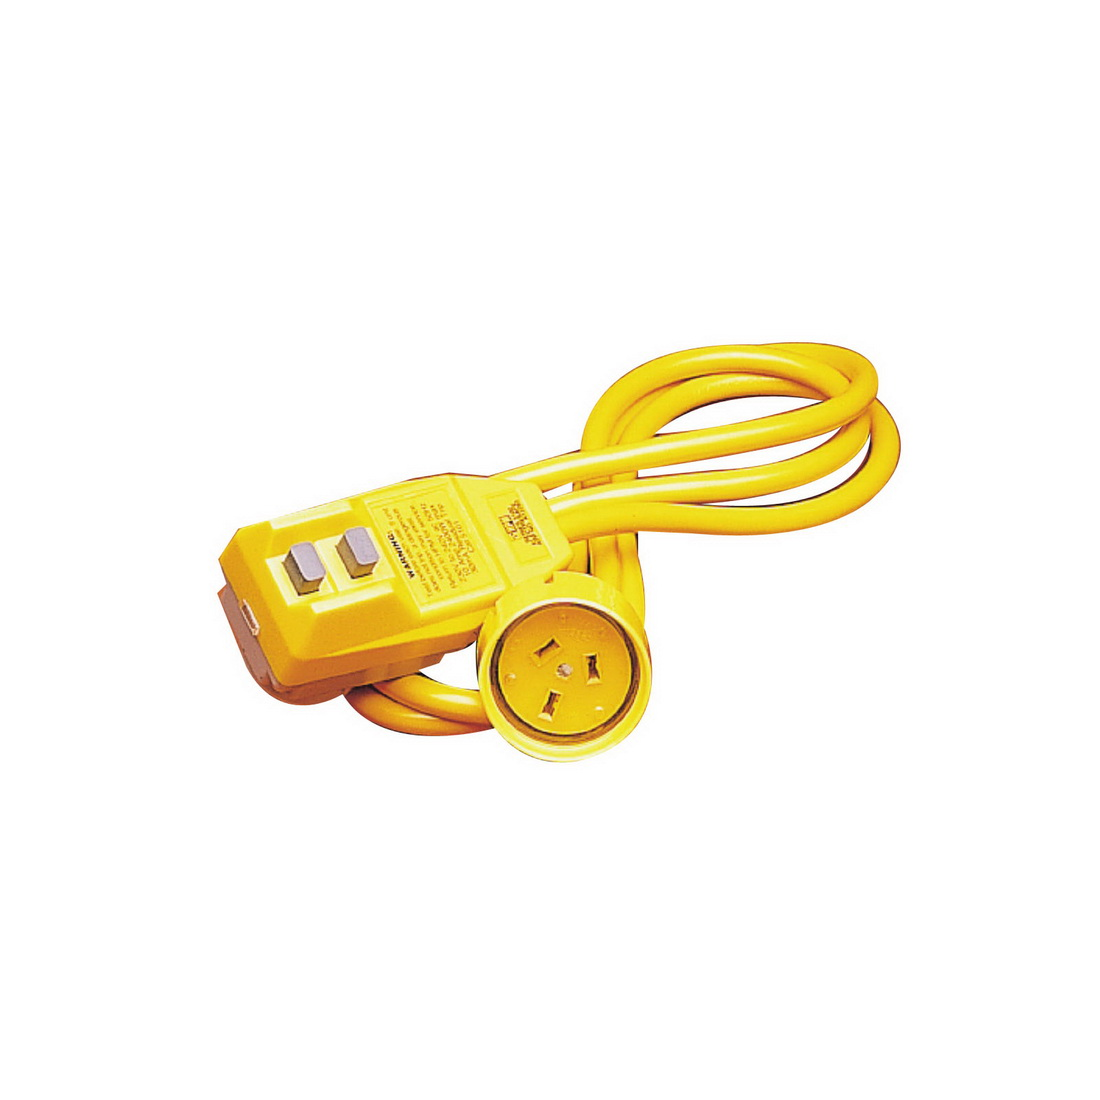 5.25ft Extension Lead with Single Outlet Safety Switch Yellow